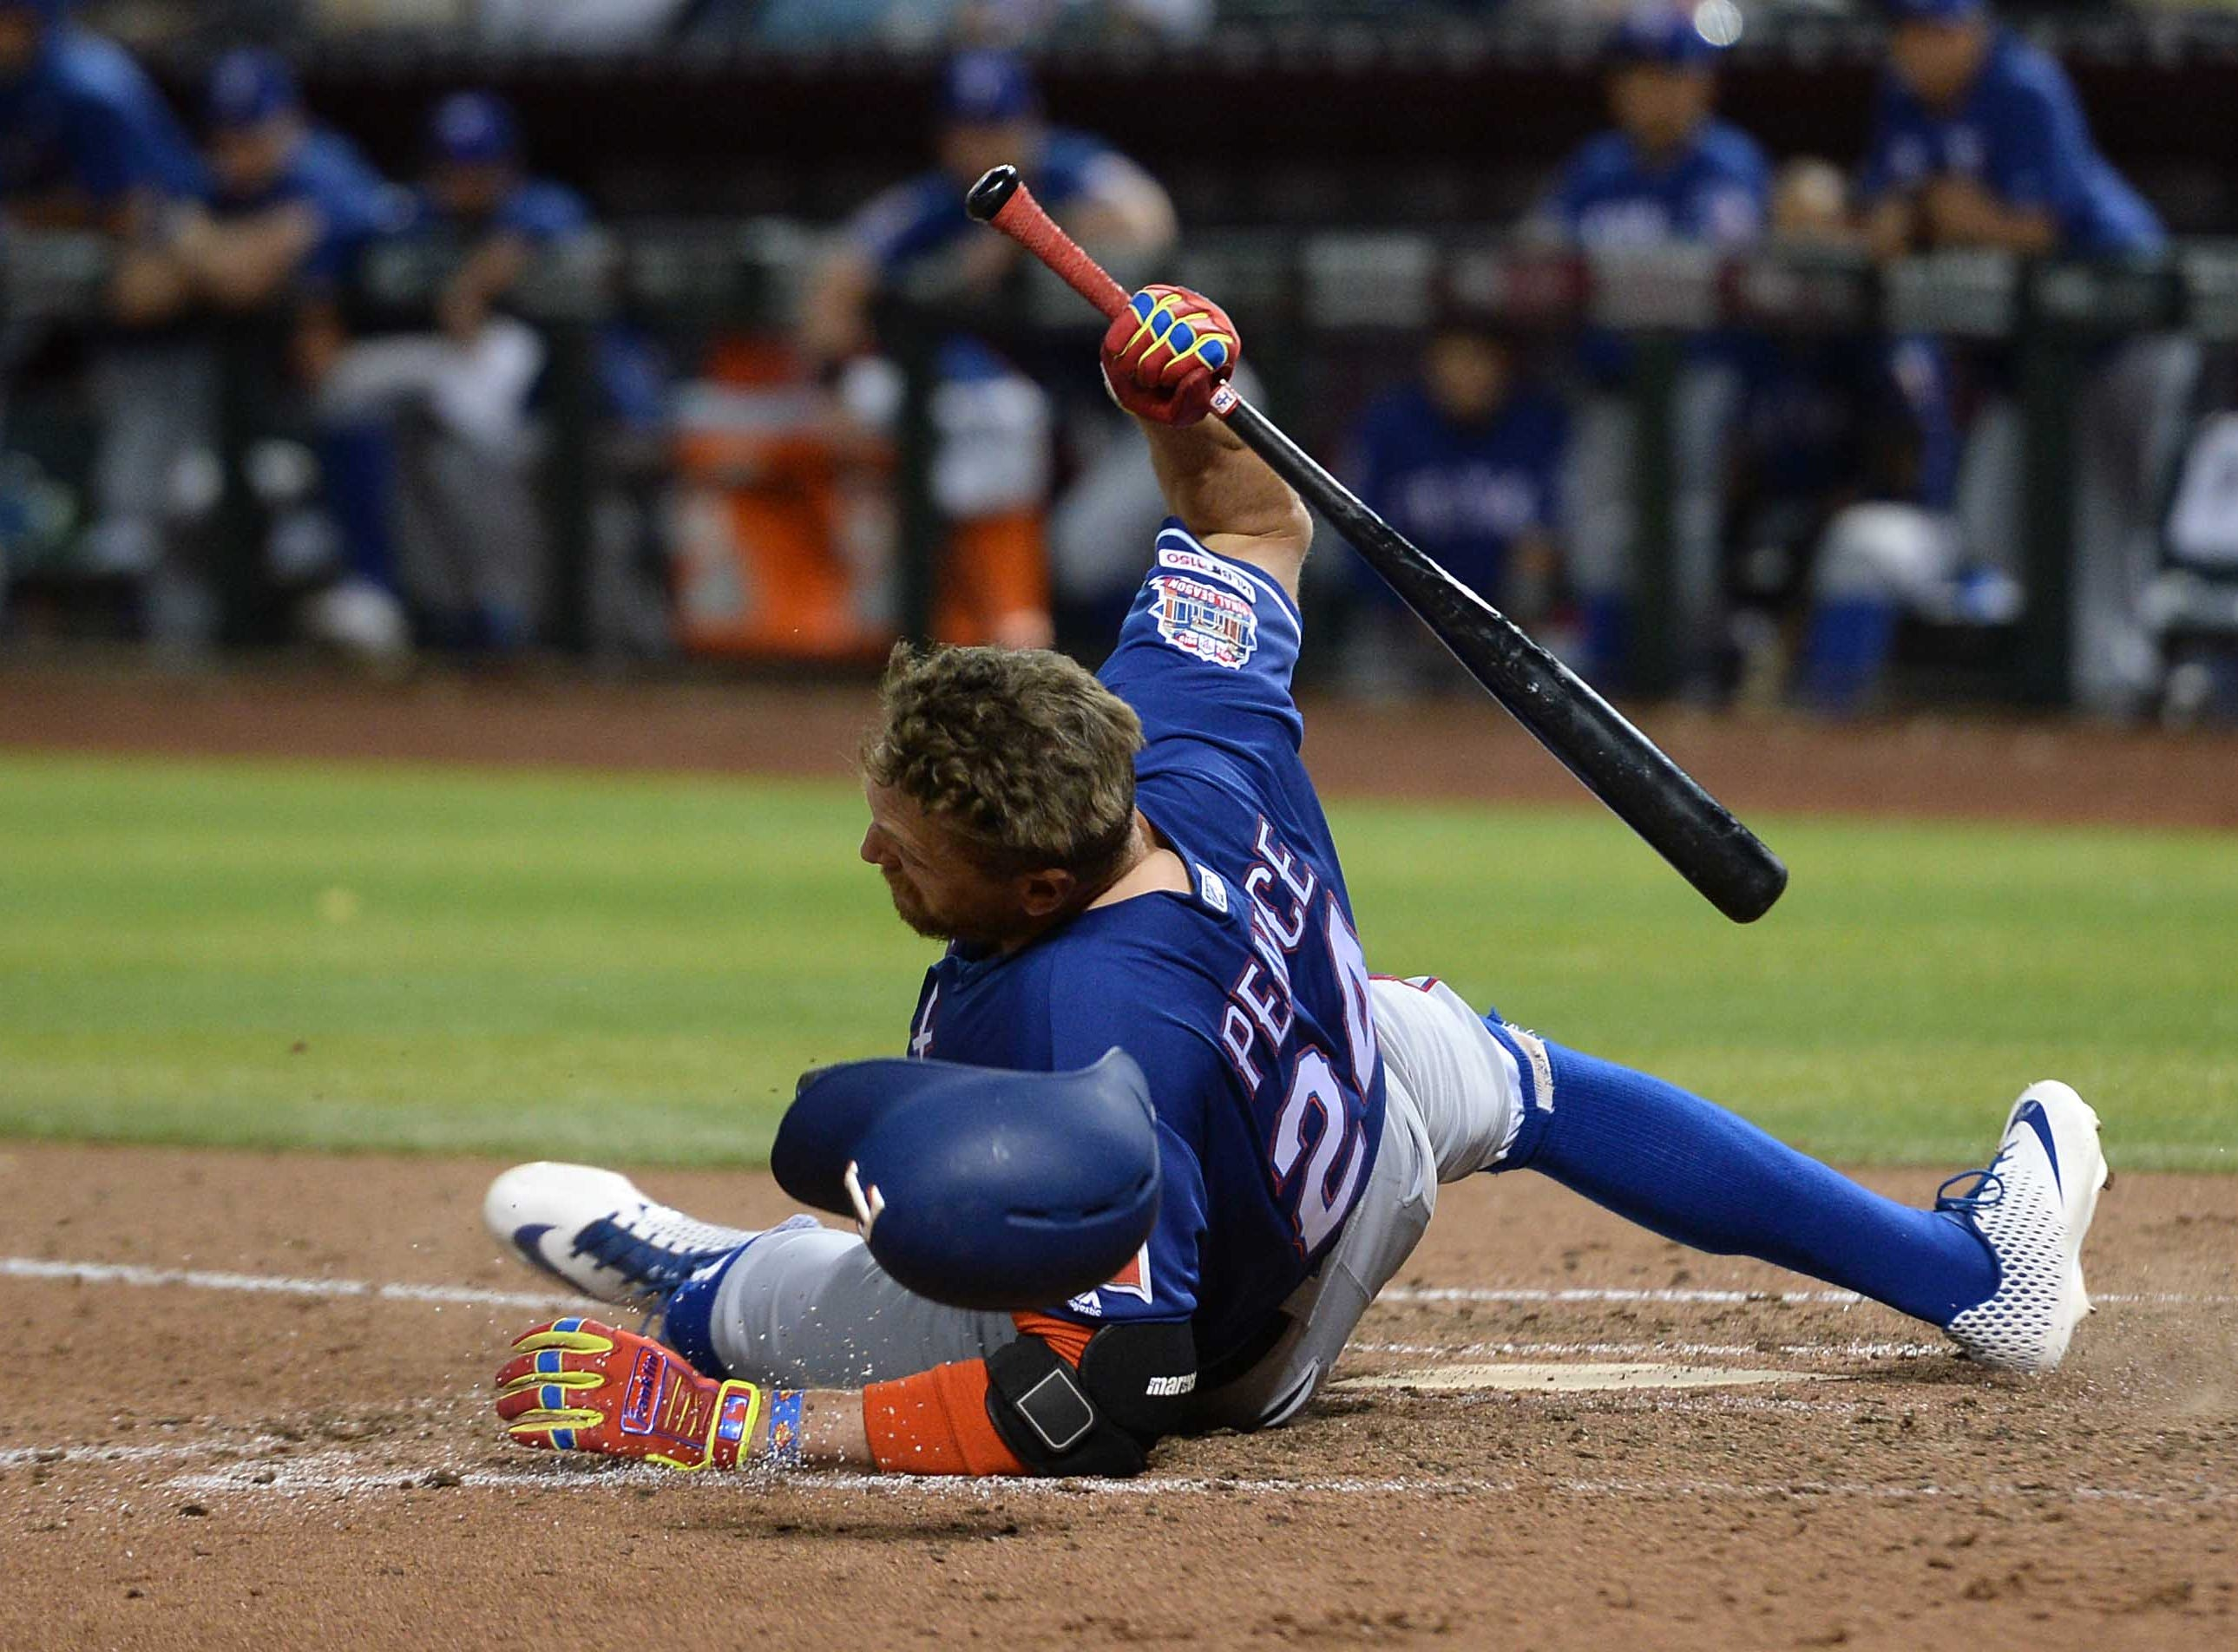 Apr 10, 2019; Phoenix, AZ, USA; Texas Rangers right fielder Hunter Pence (24) hits the ground while avoiding a pitch against the Arizona Diamondbacks during the sixth inning at Chase Field. Mandatory Credit: Joe Camporeale-USA TODAY Sports